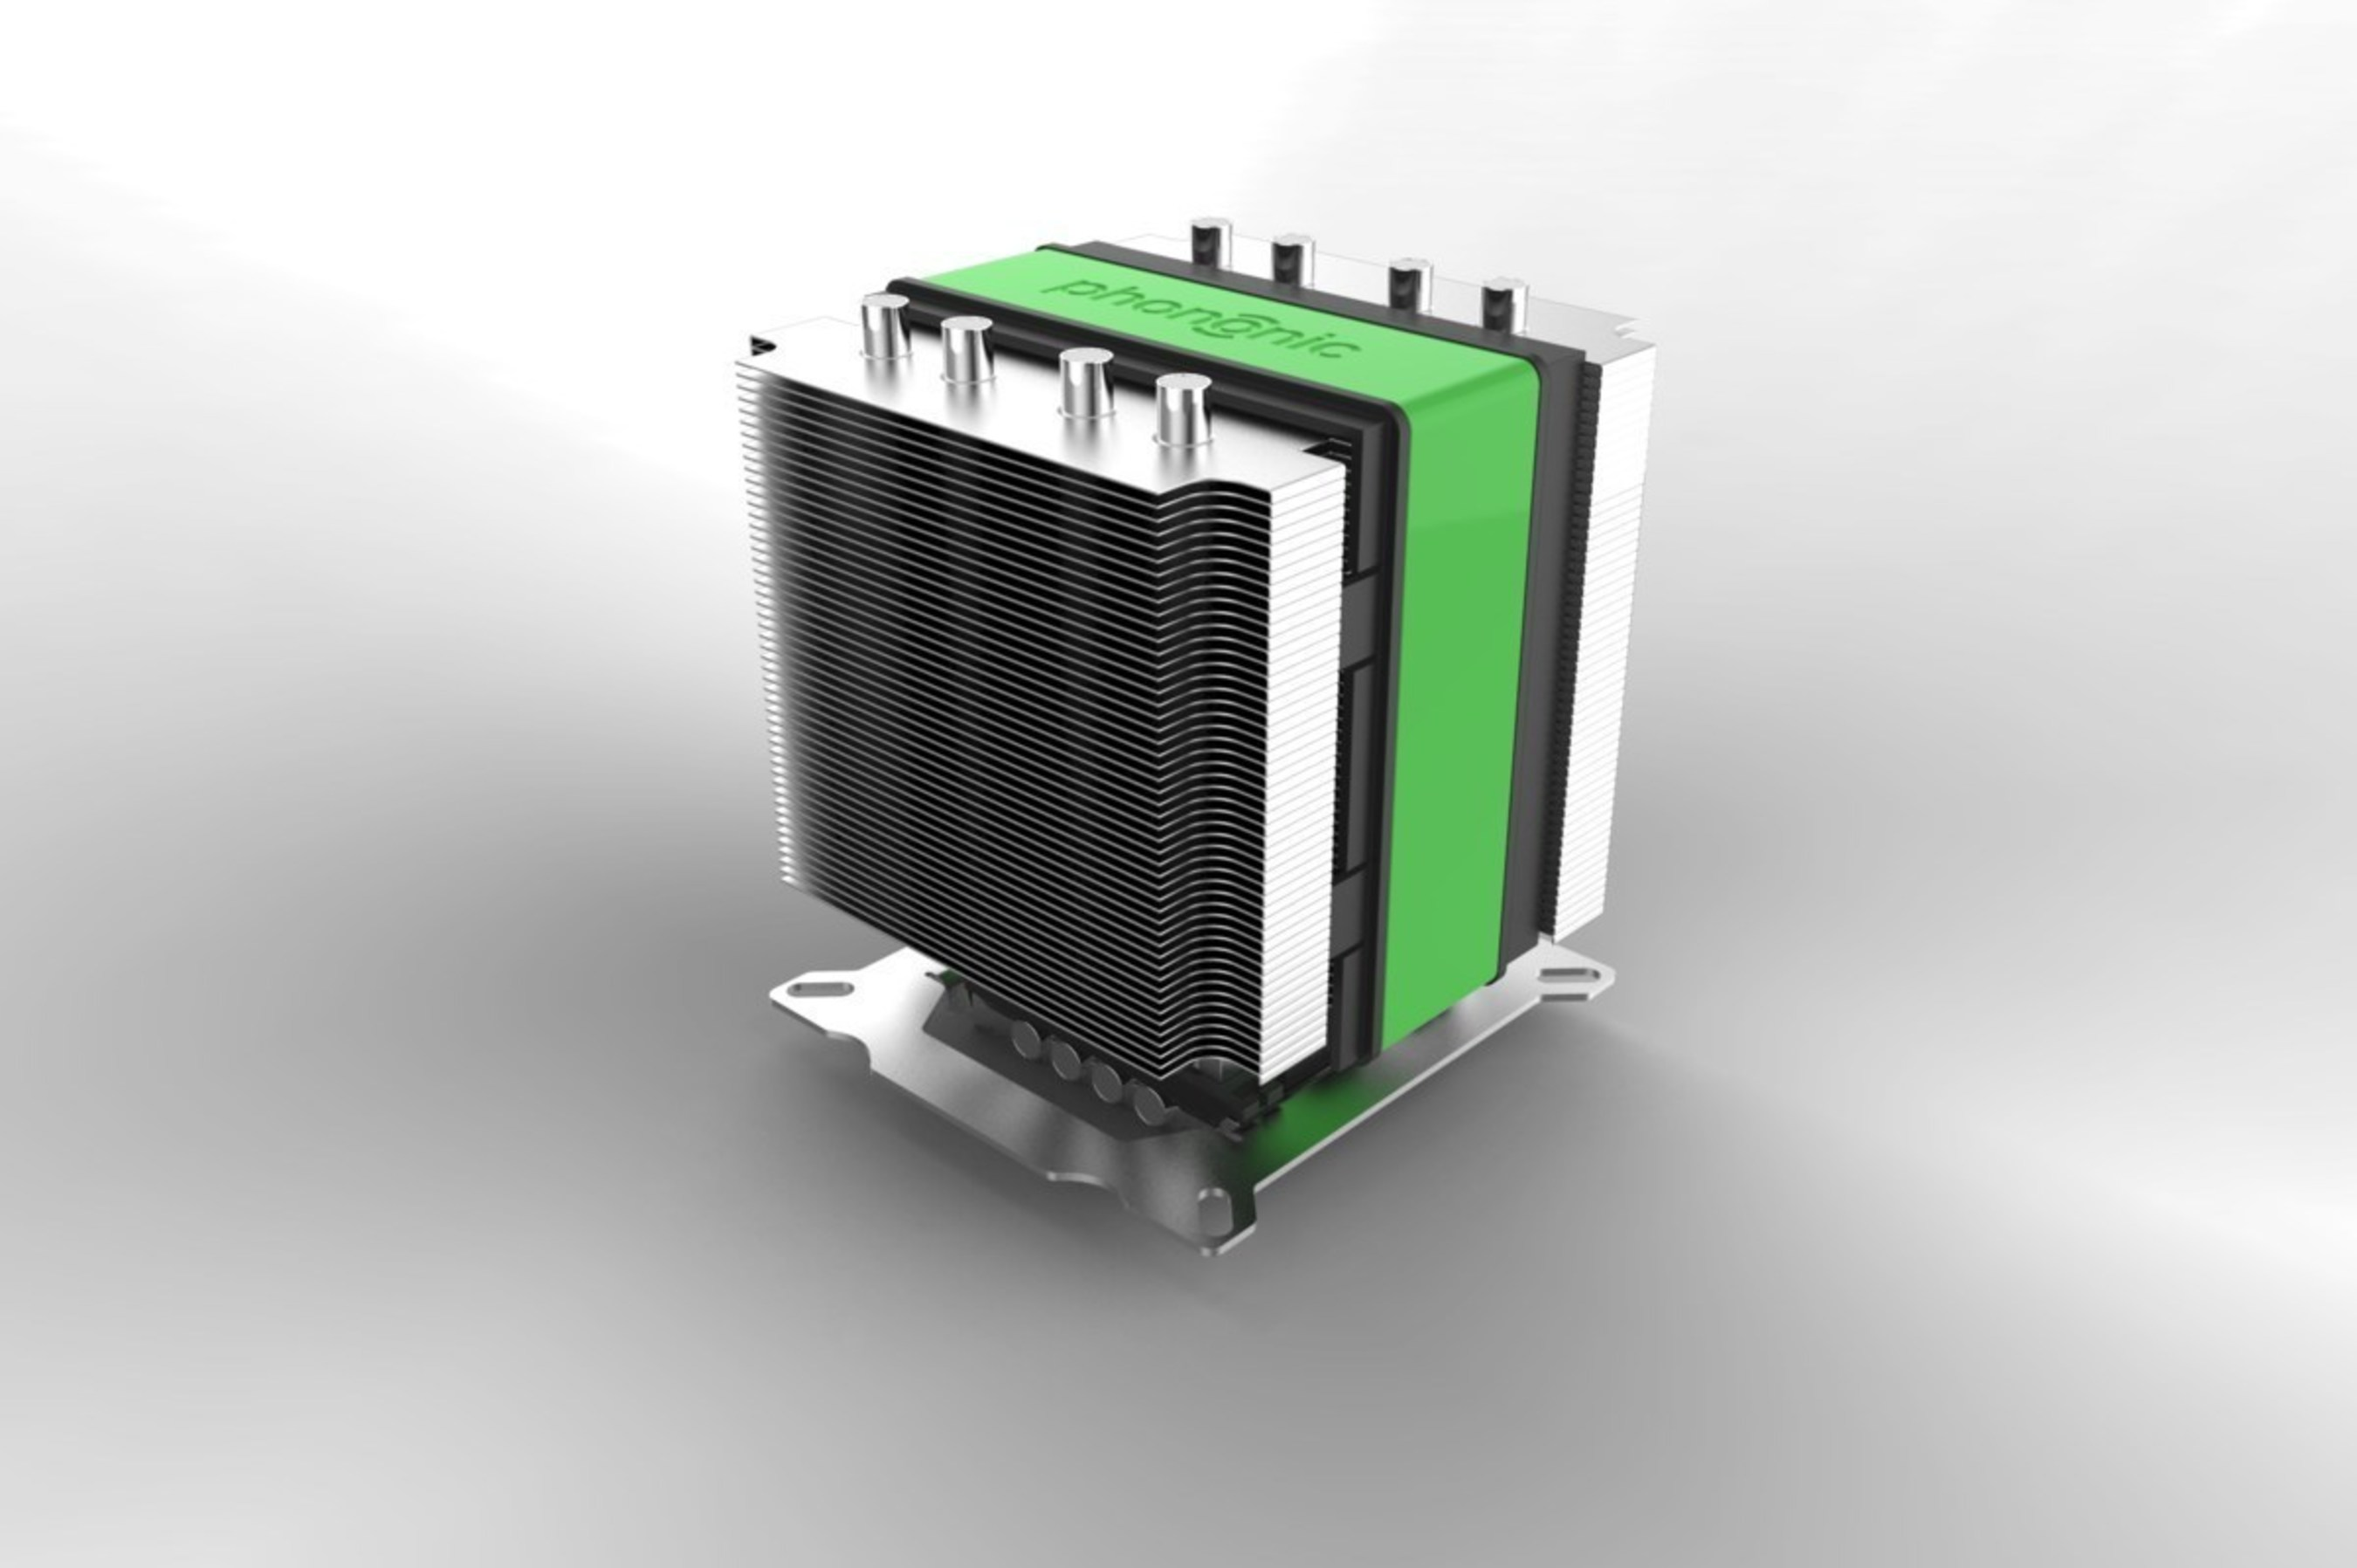 Phononic's solid-state CPU Cooler provides big cooling performance in a small package